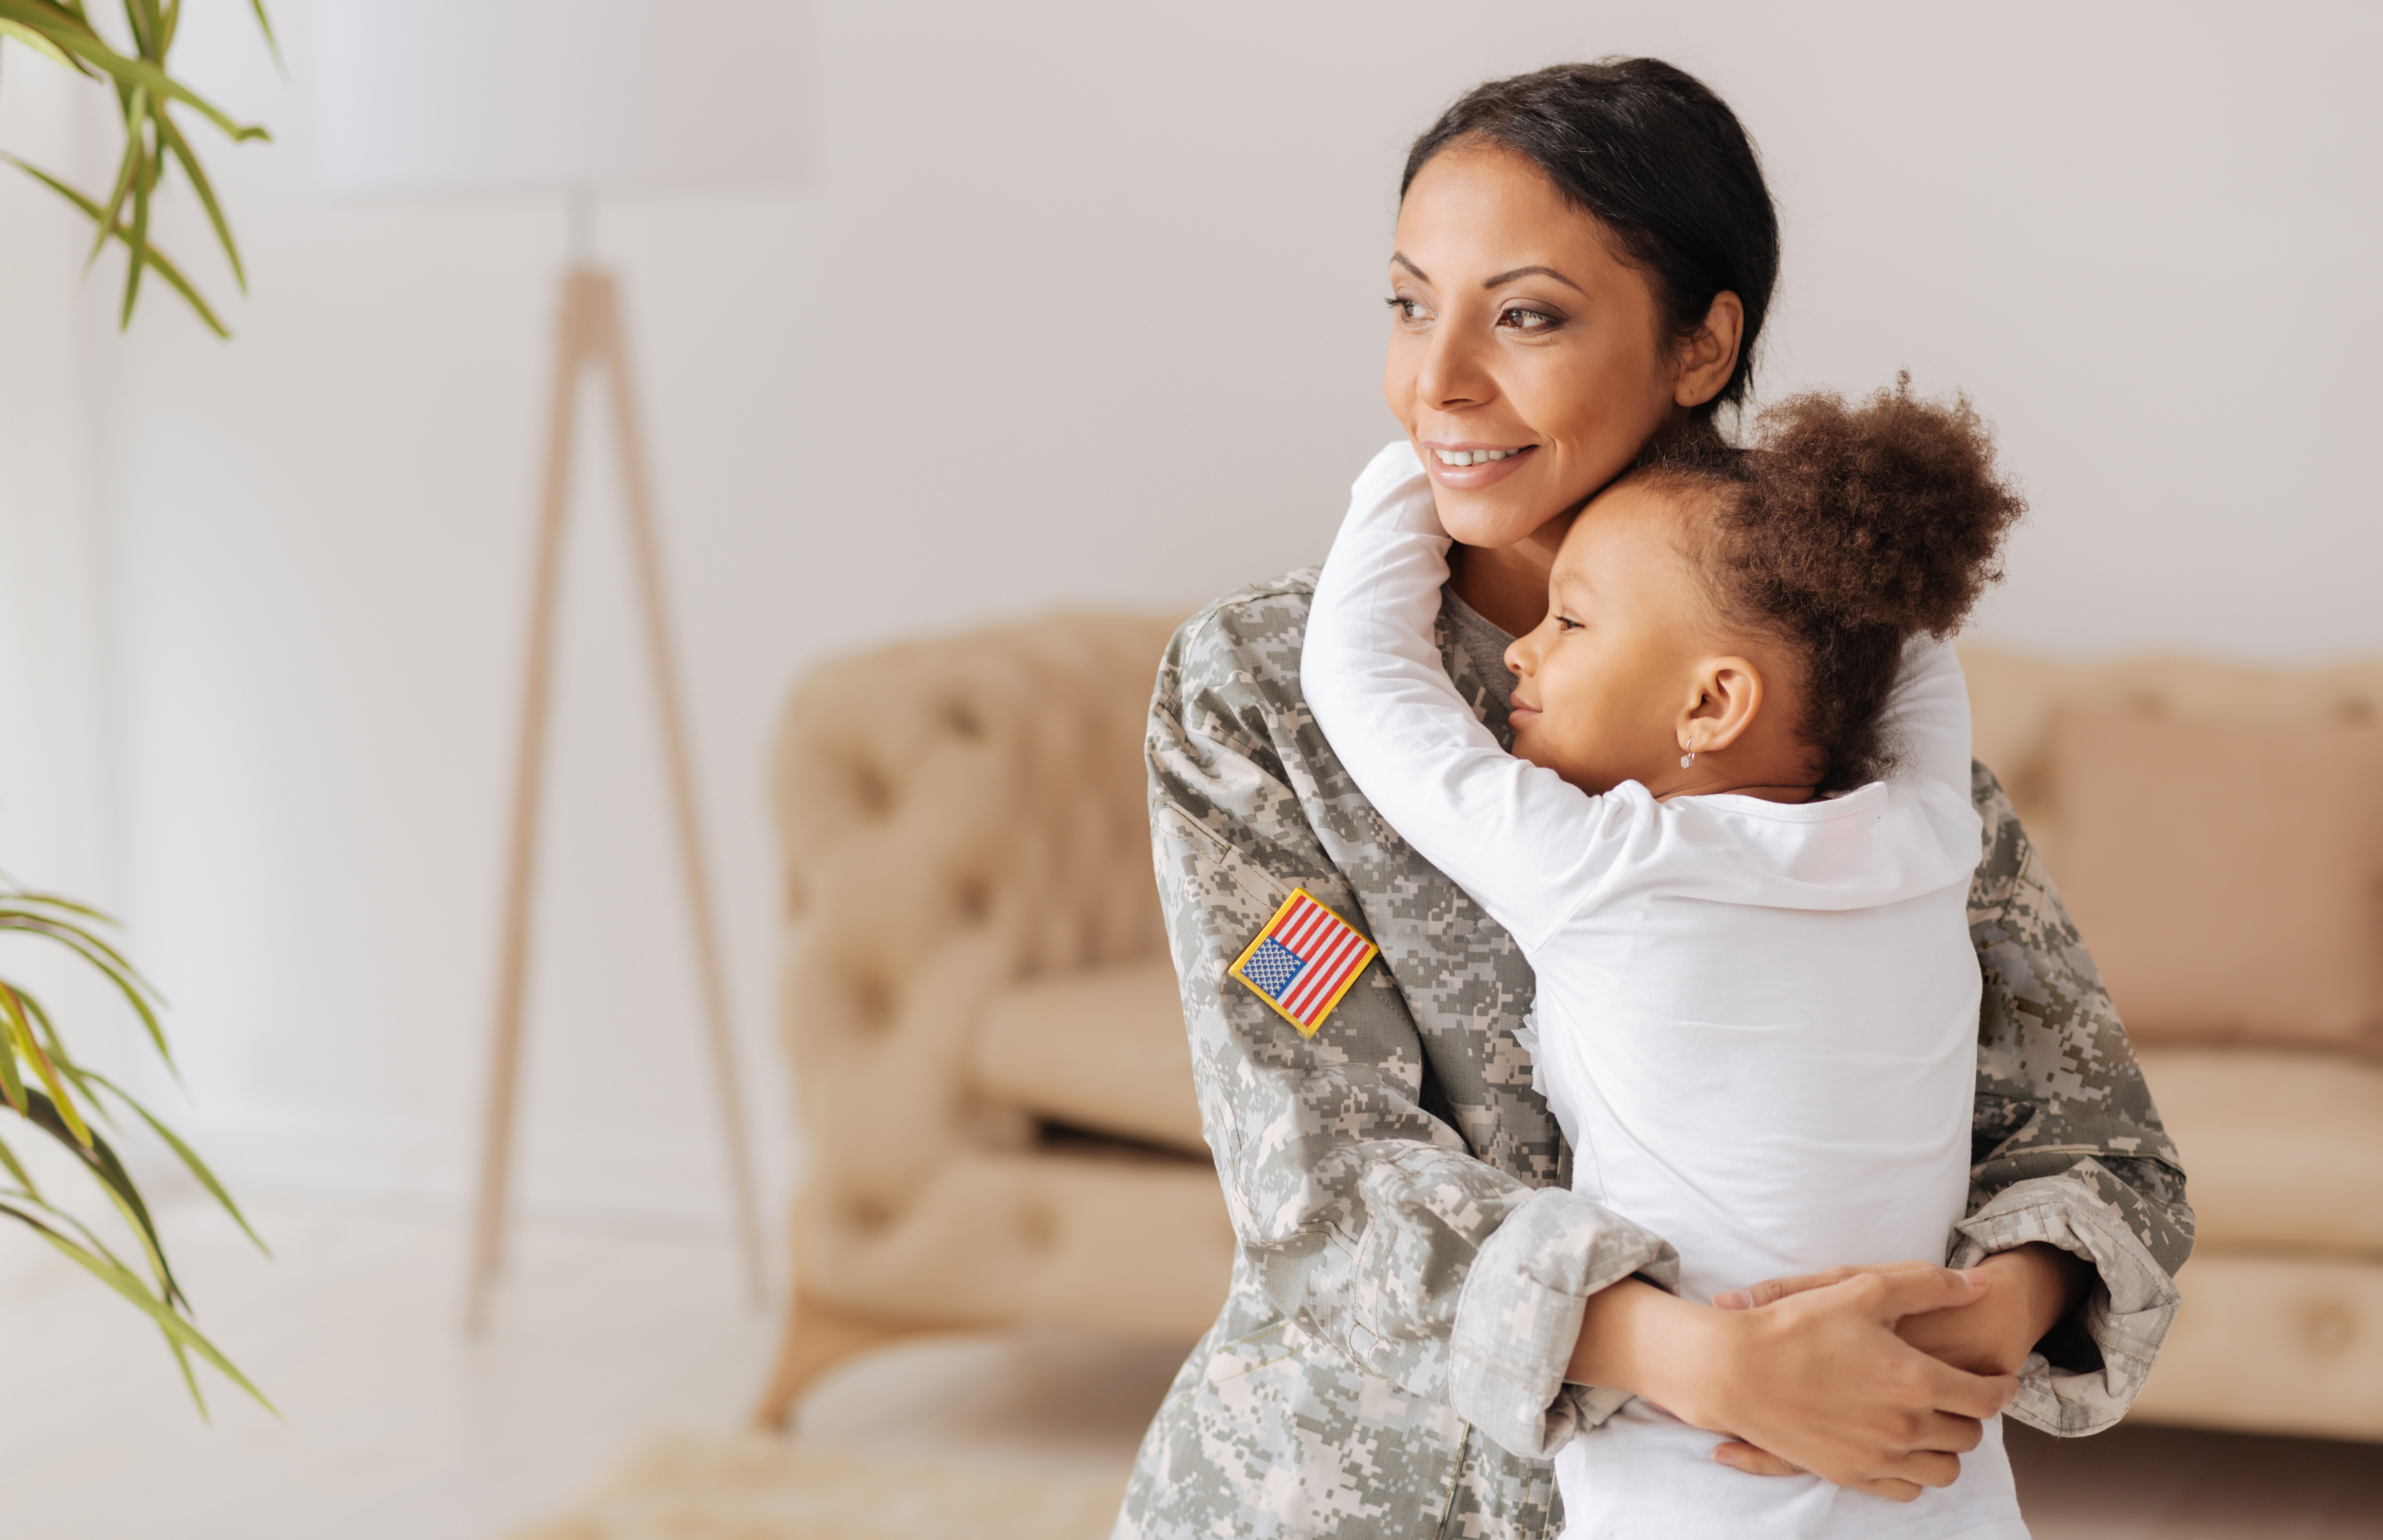 How To Obtain Lost Birth Certificates For Military Dependents